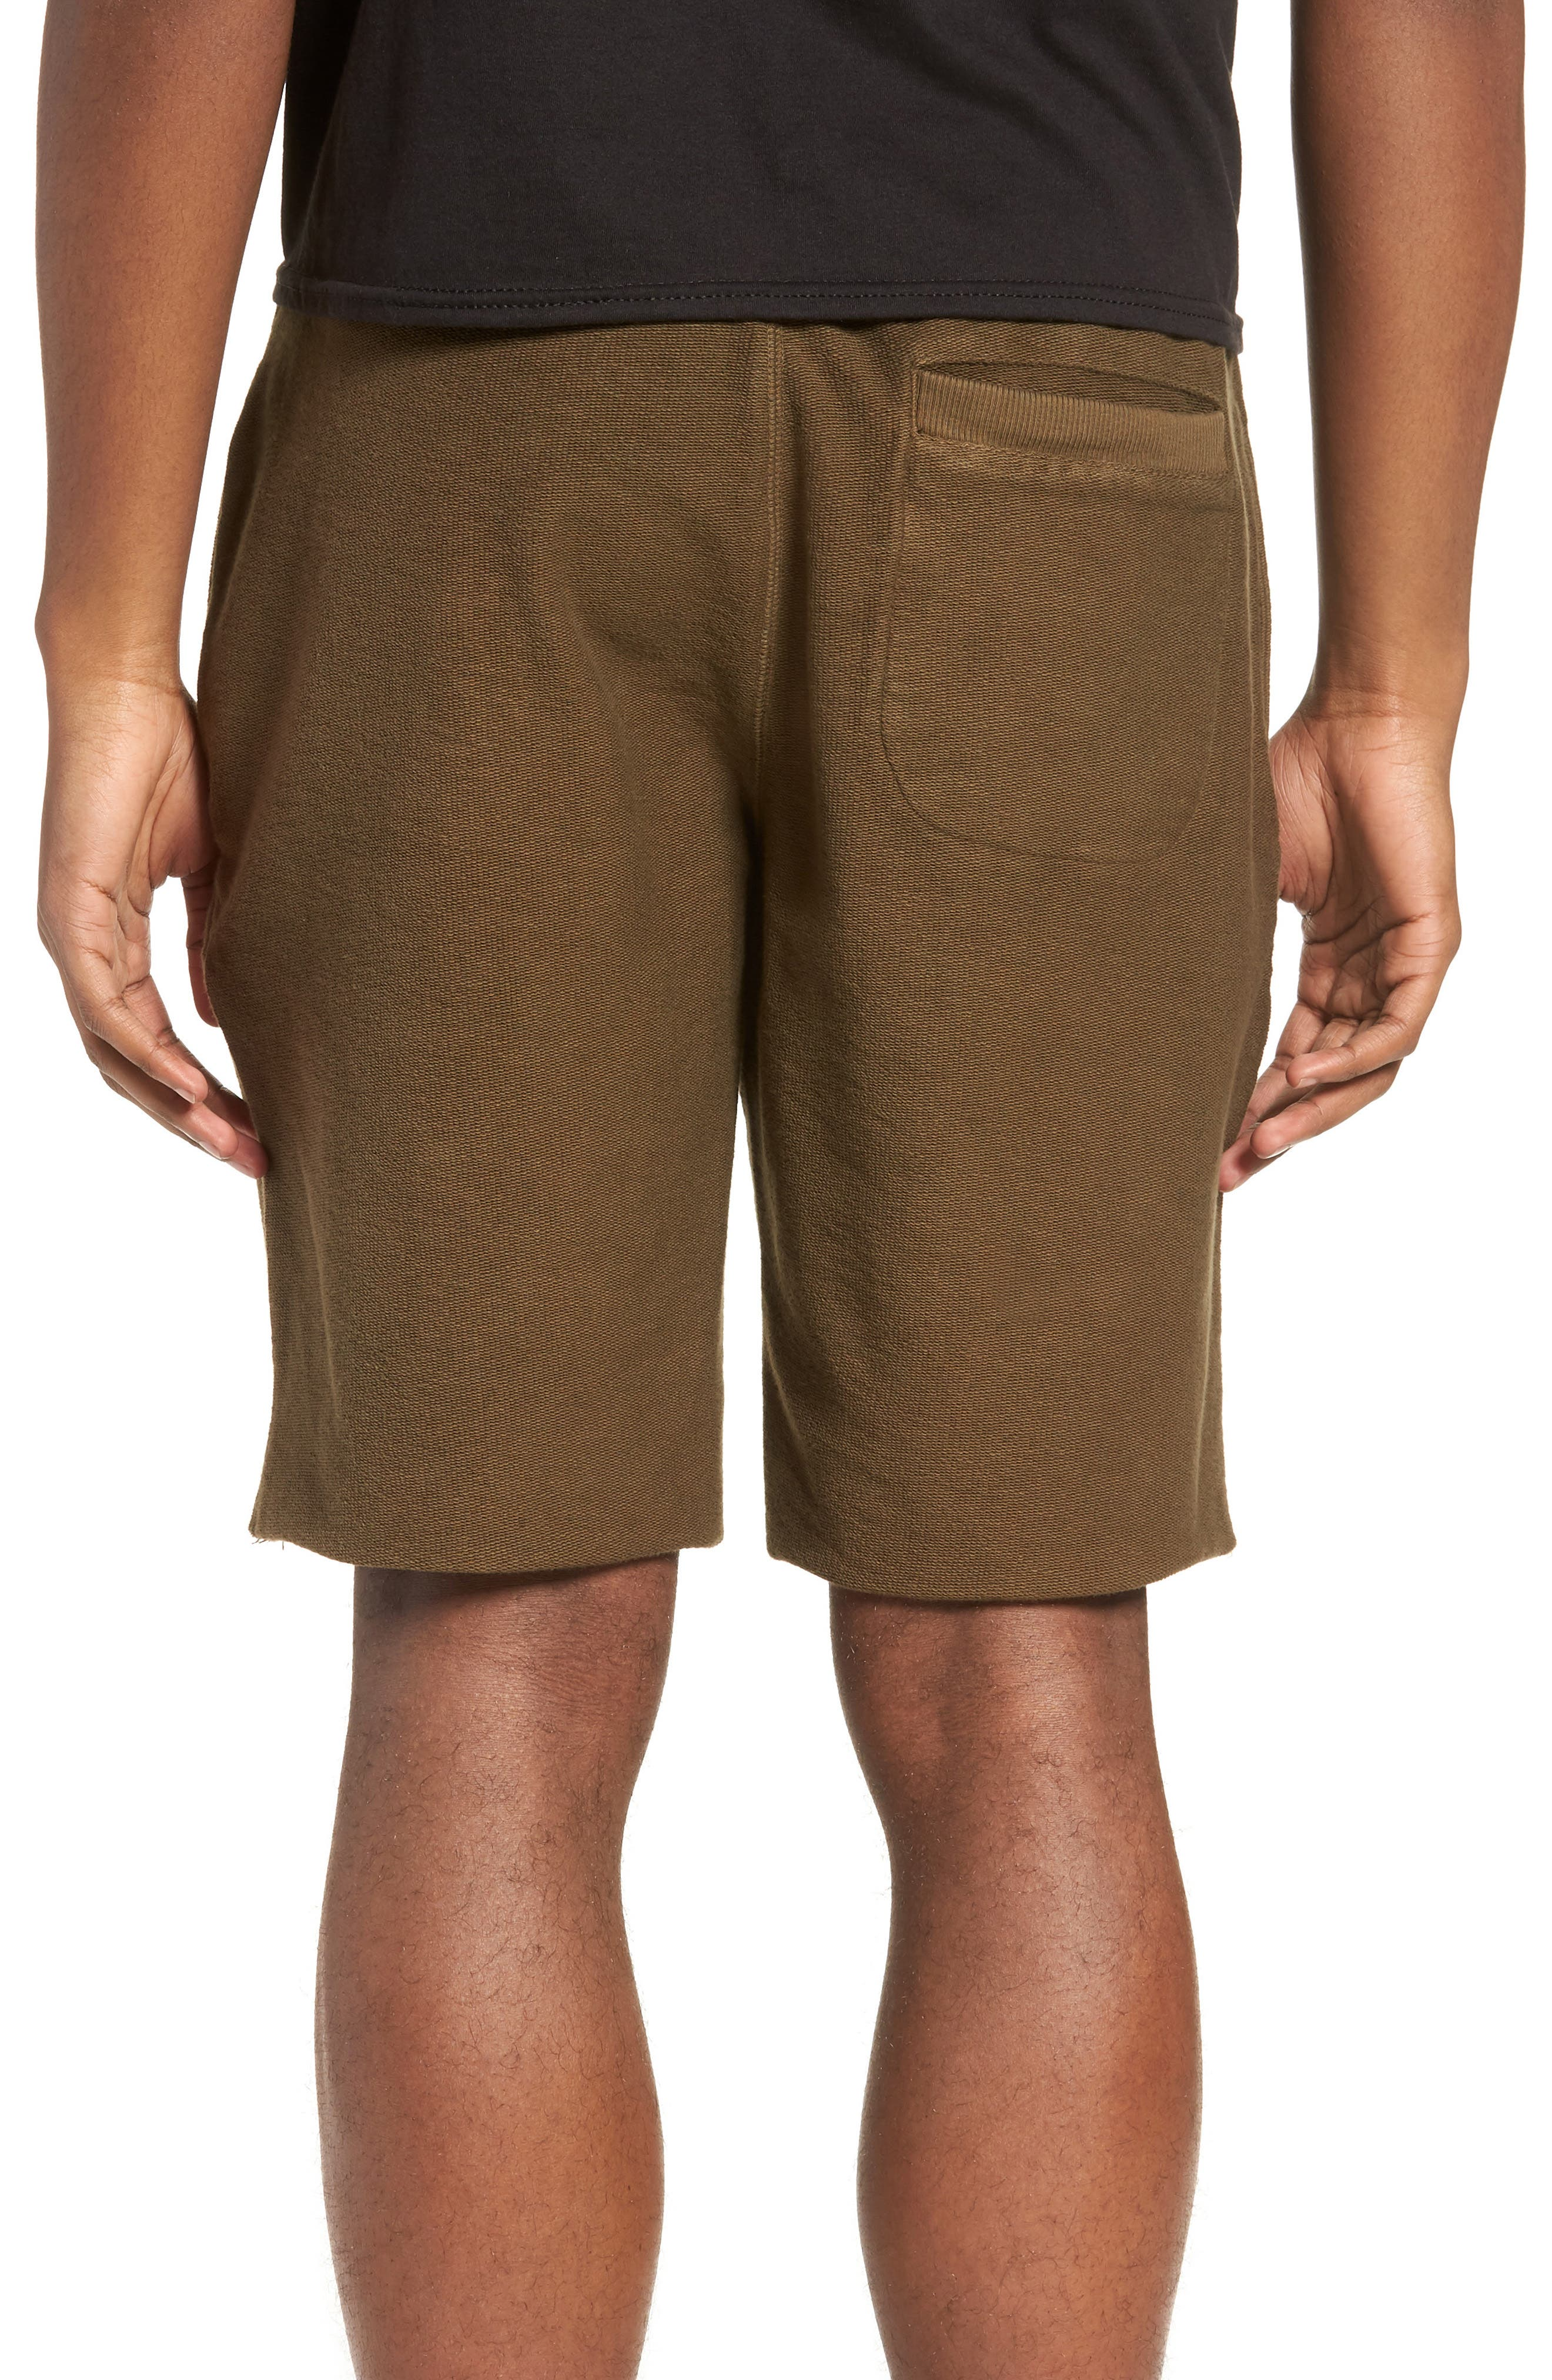 THE RAIL,                             Reverse Terry Shorts,                             Alternate thumbnail 2, color,                             315